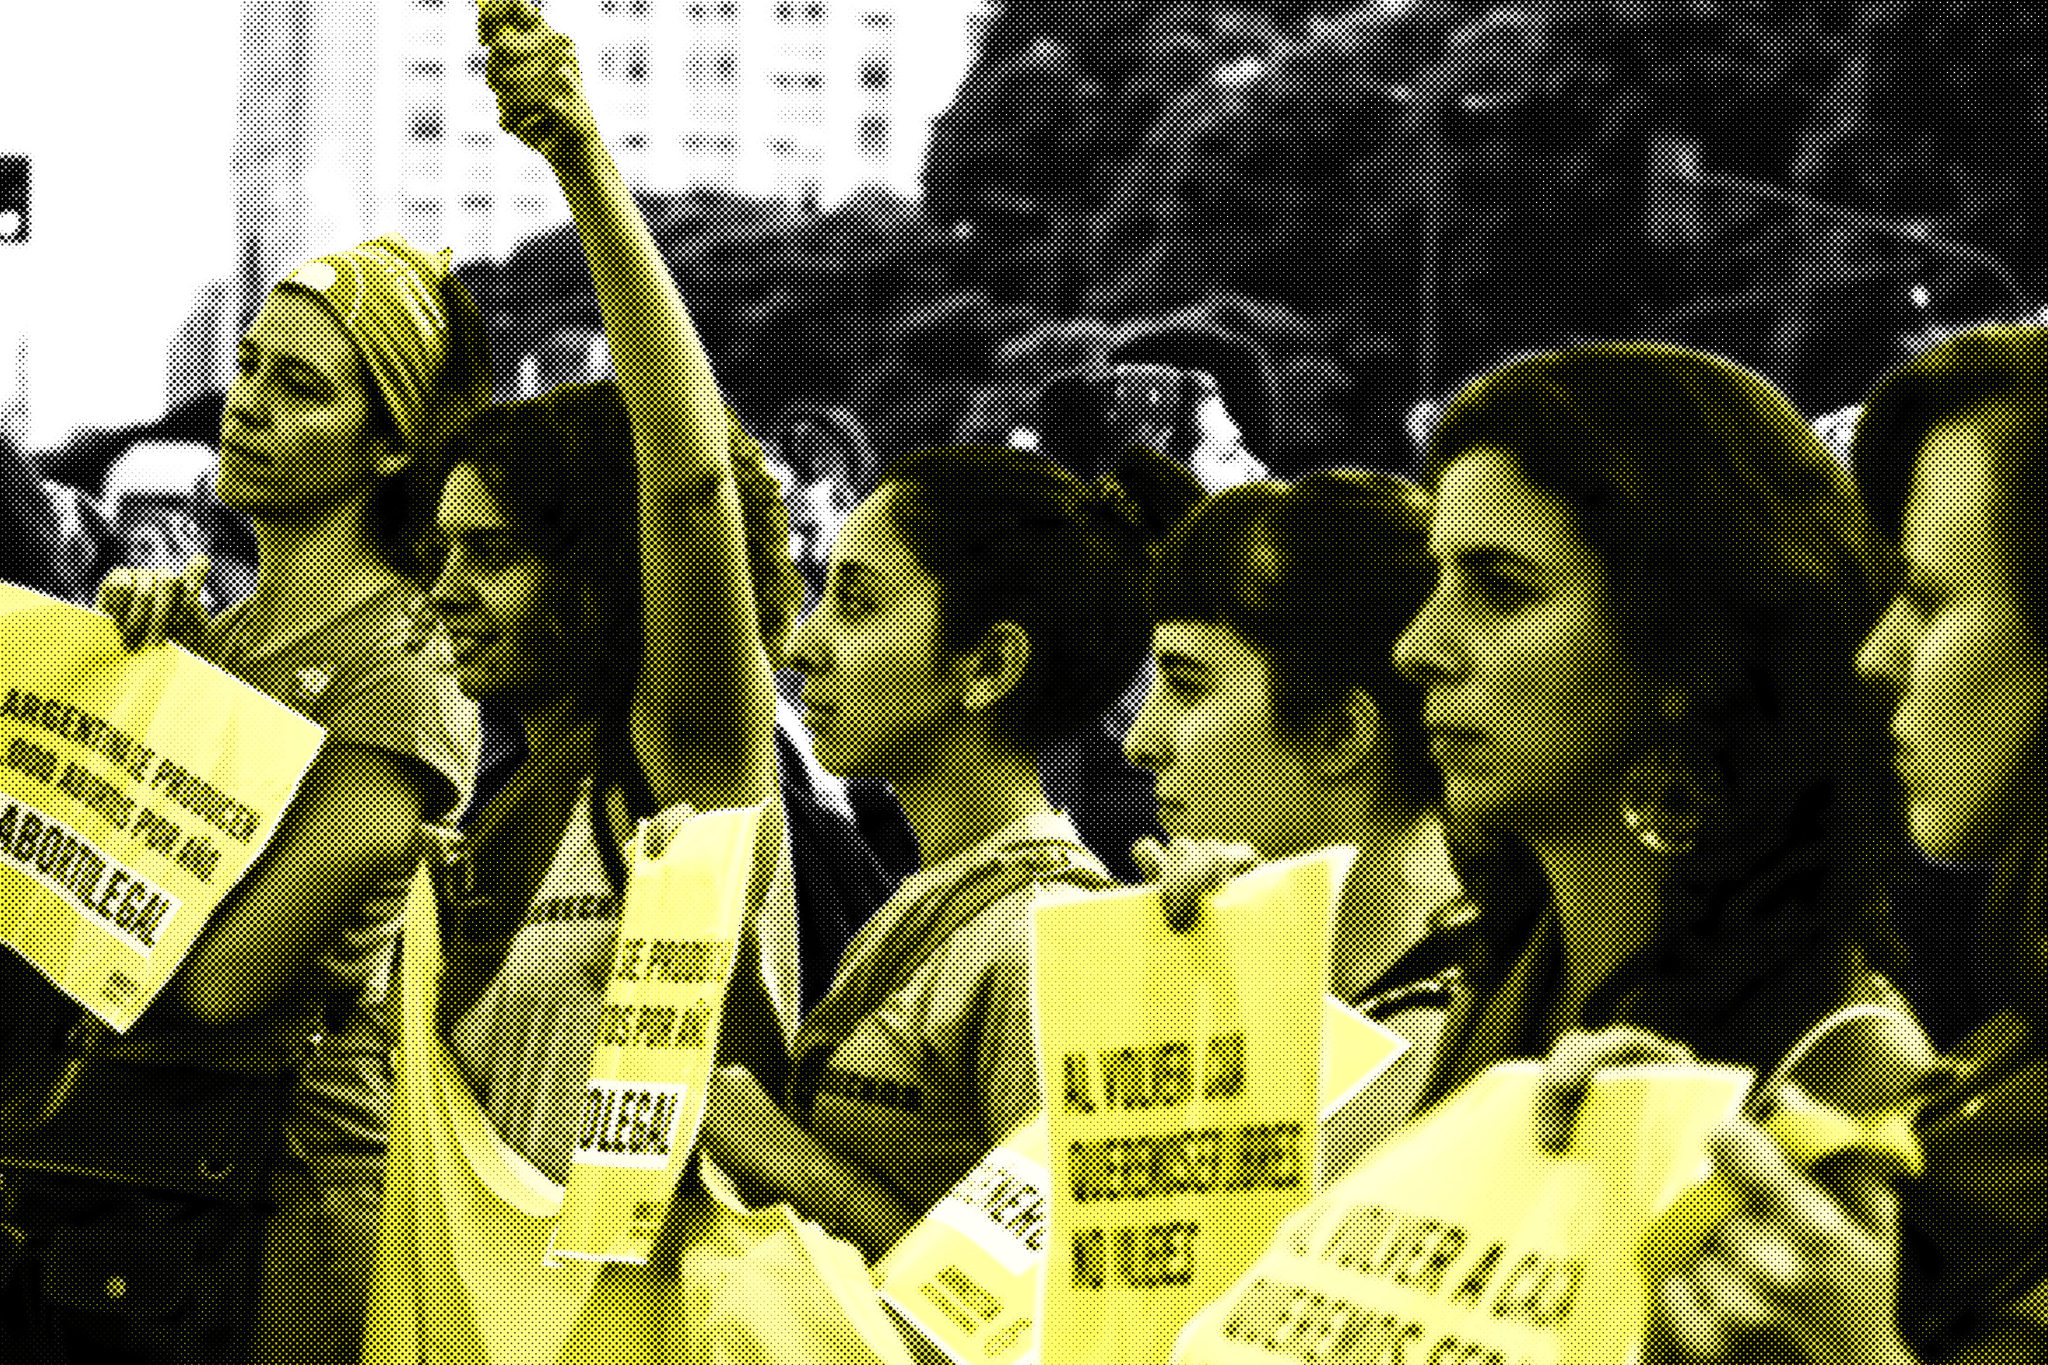 Chile: Decriminalisation of abortion, an important win for human rights